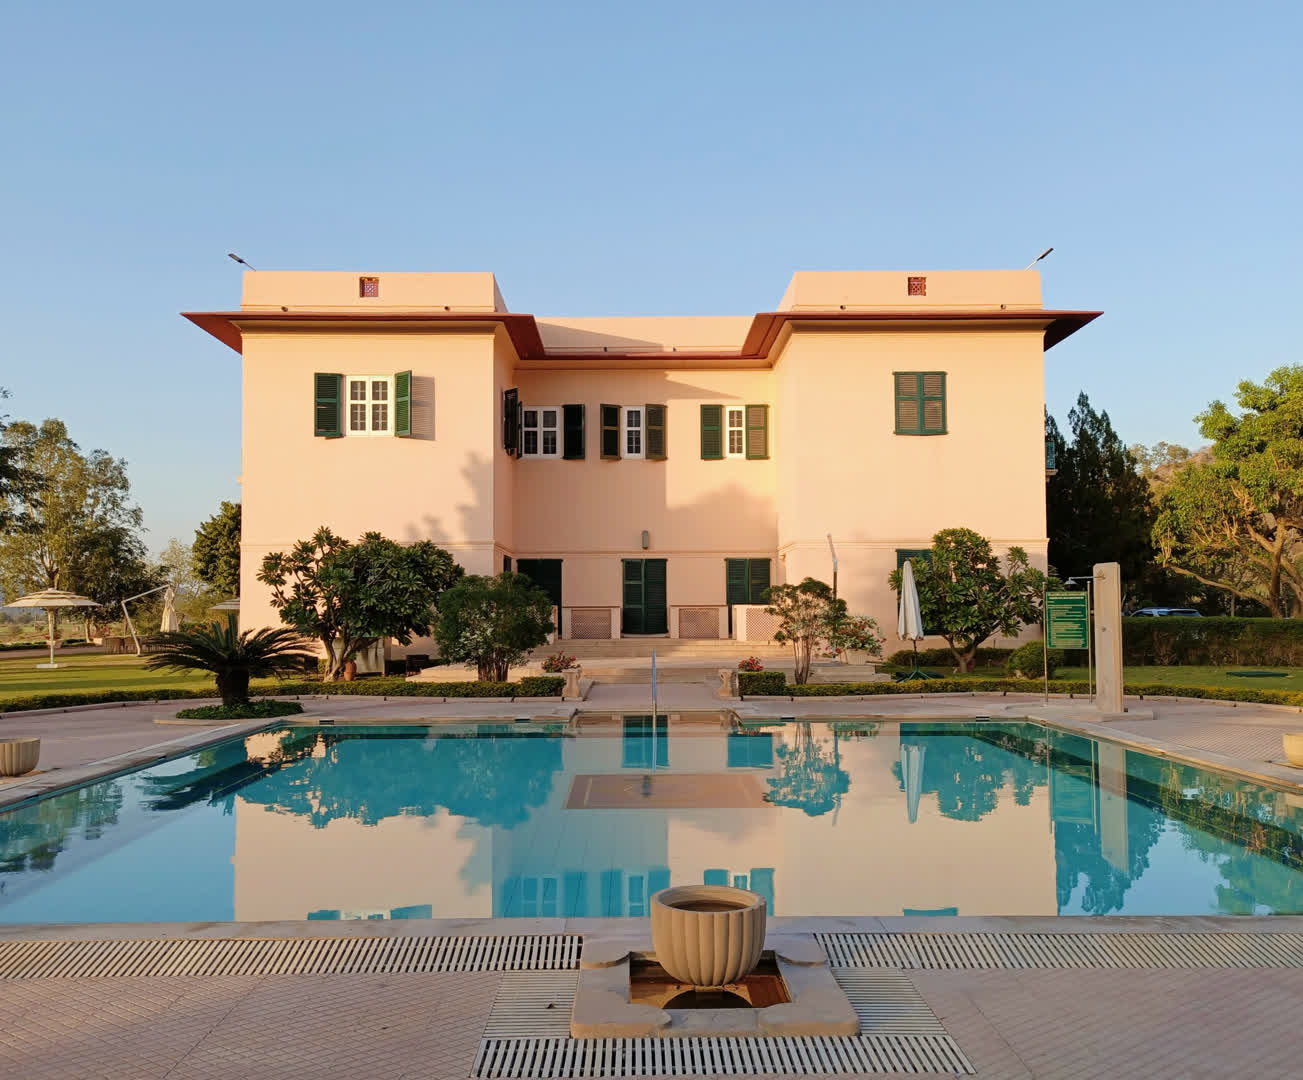 Pool and Side View of Ramgarh Lodge